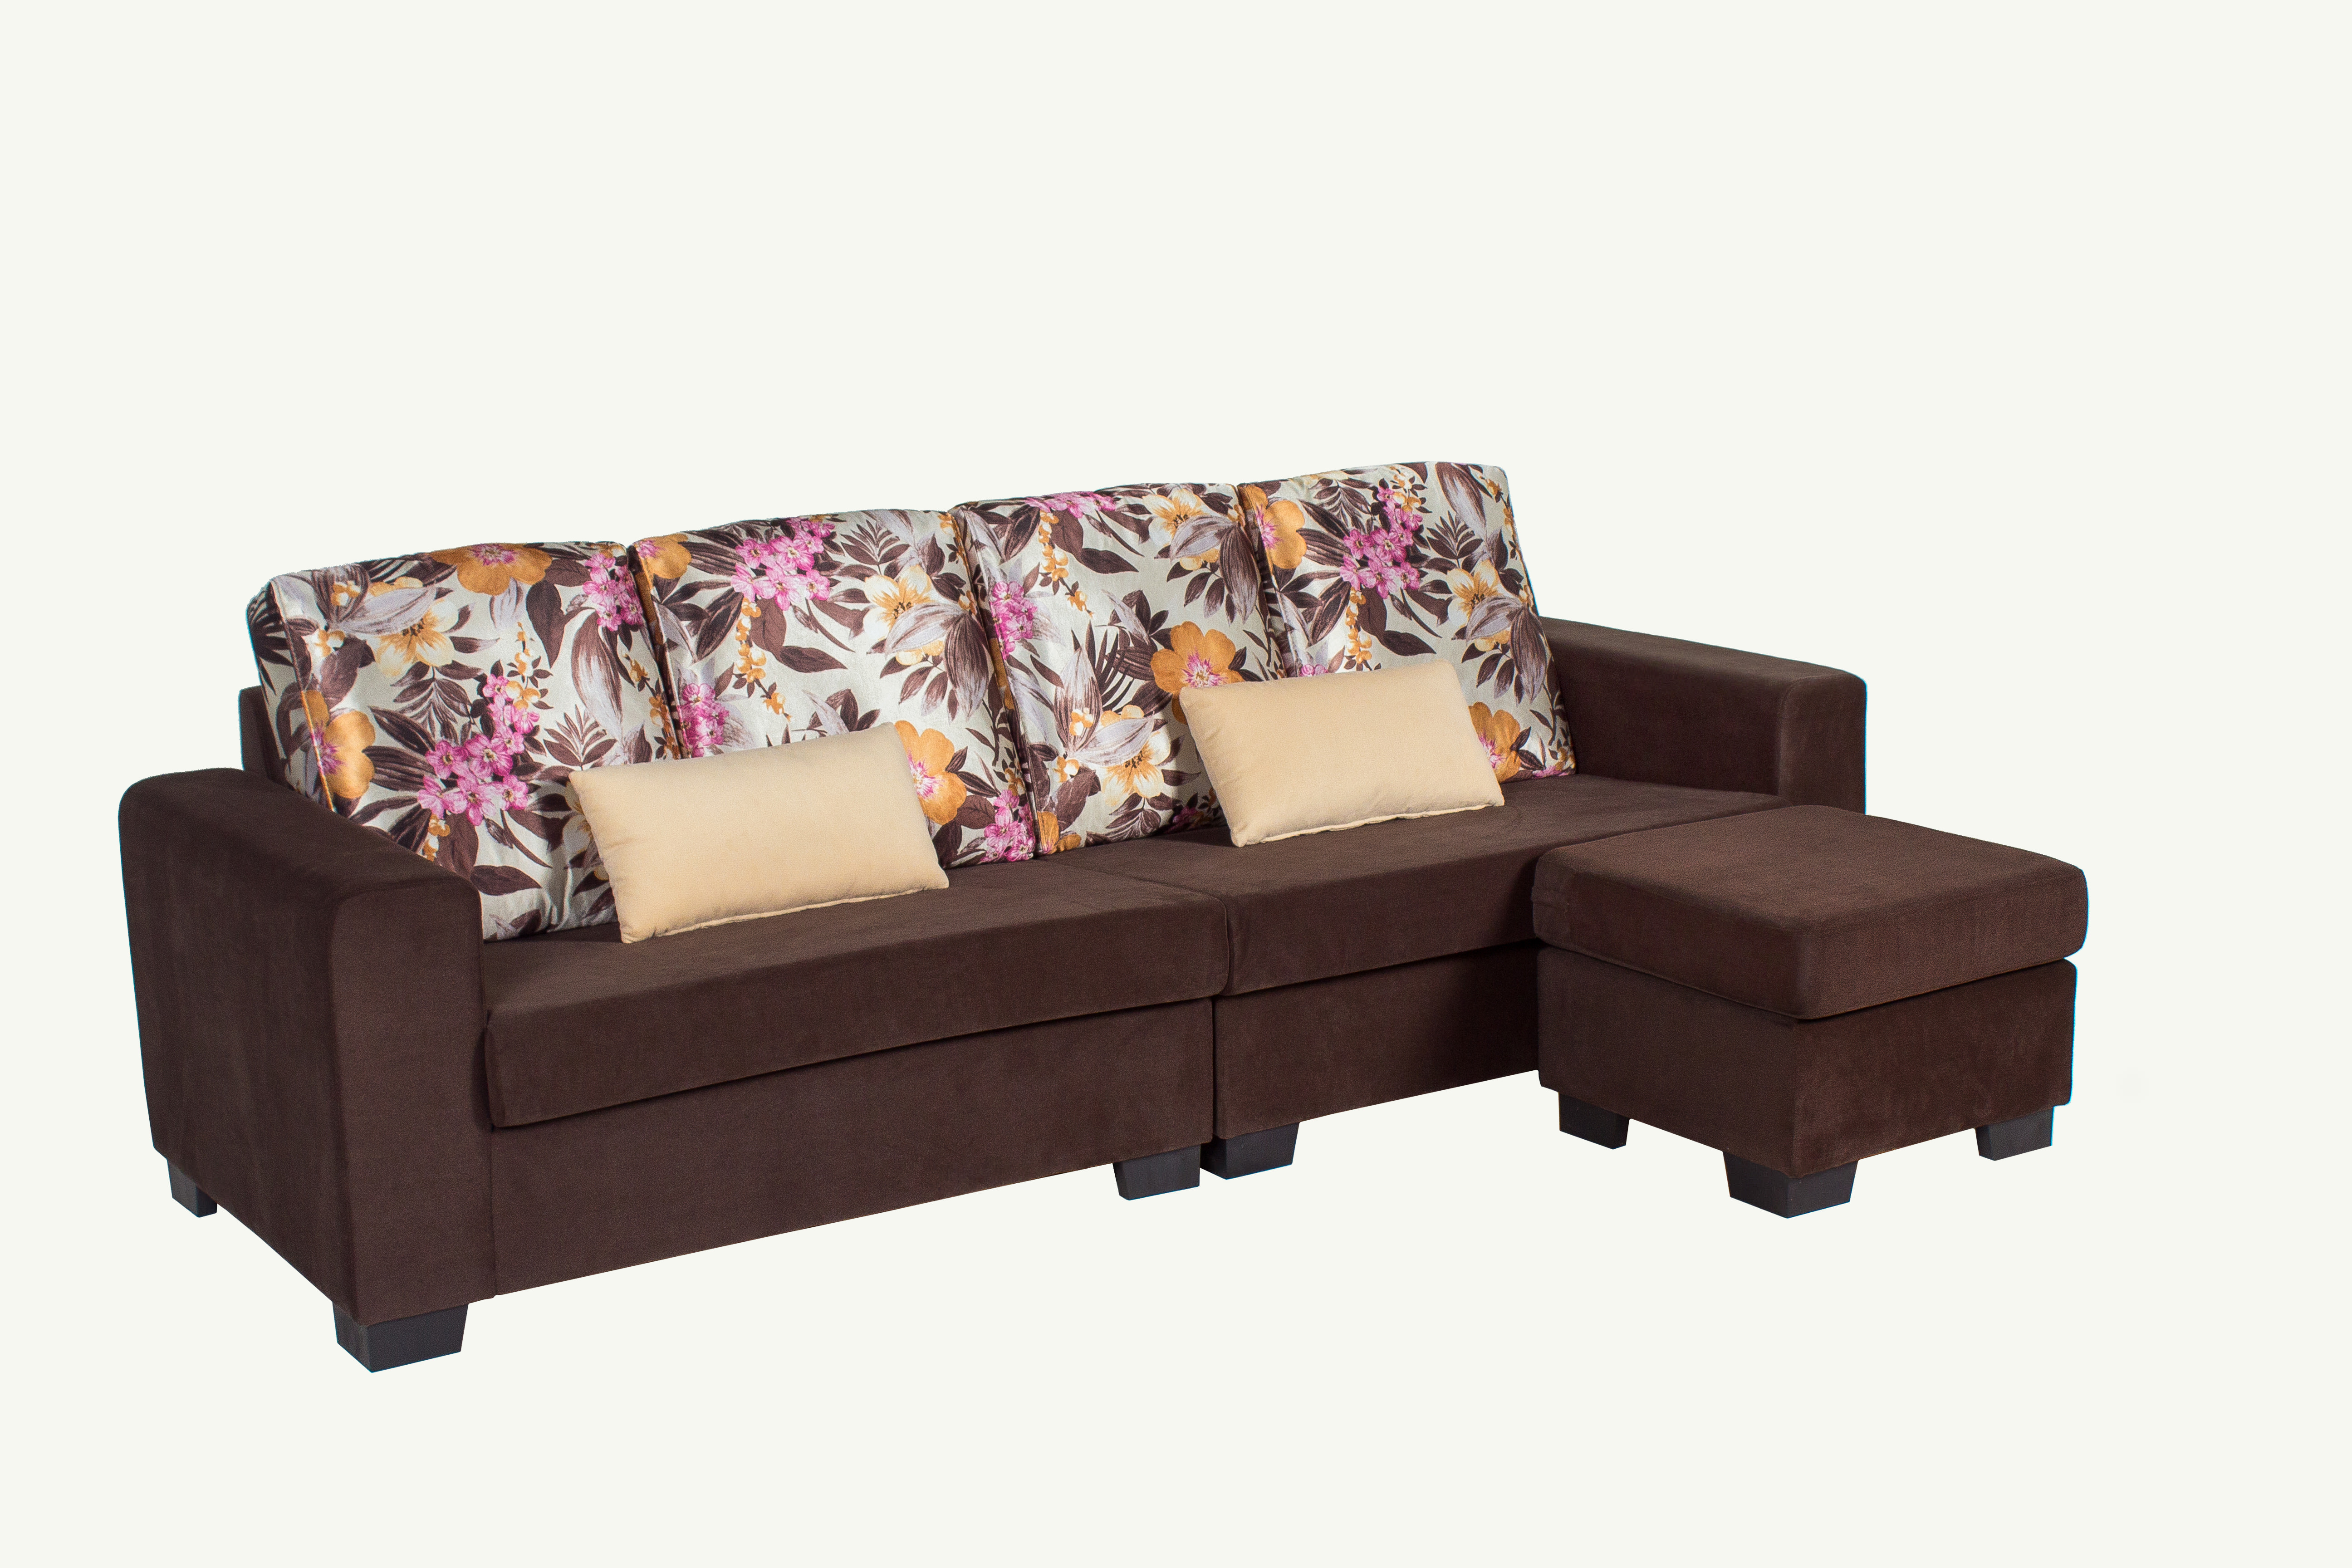 sofa sets cheap malaysia width of queen bed l shape singer